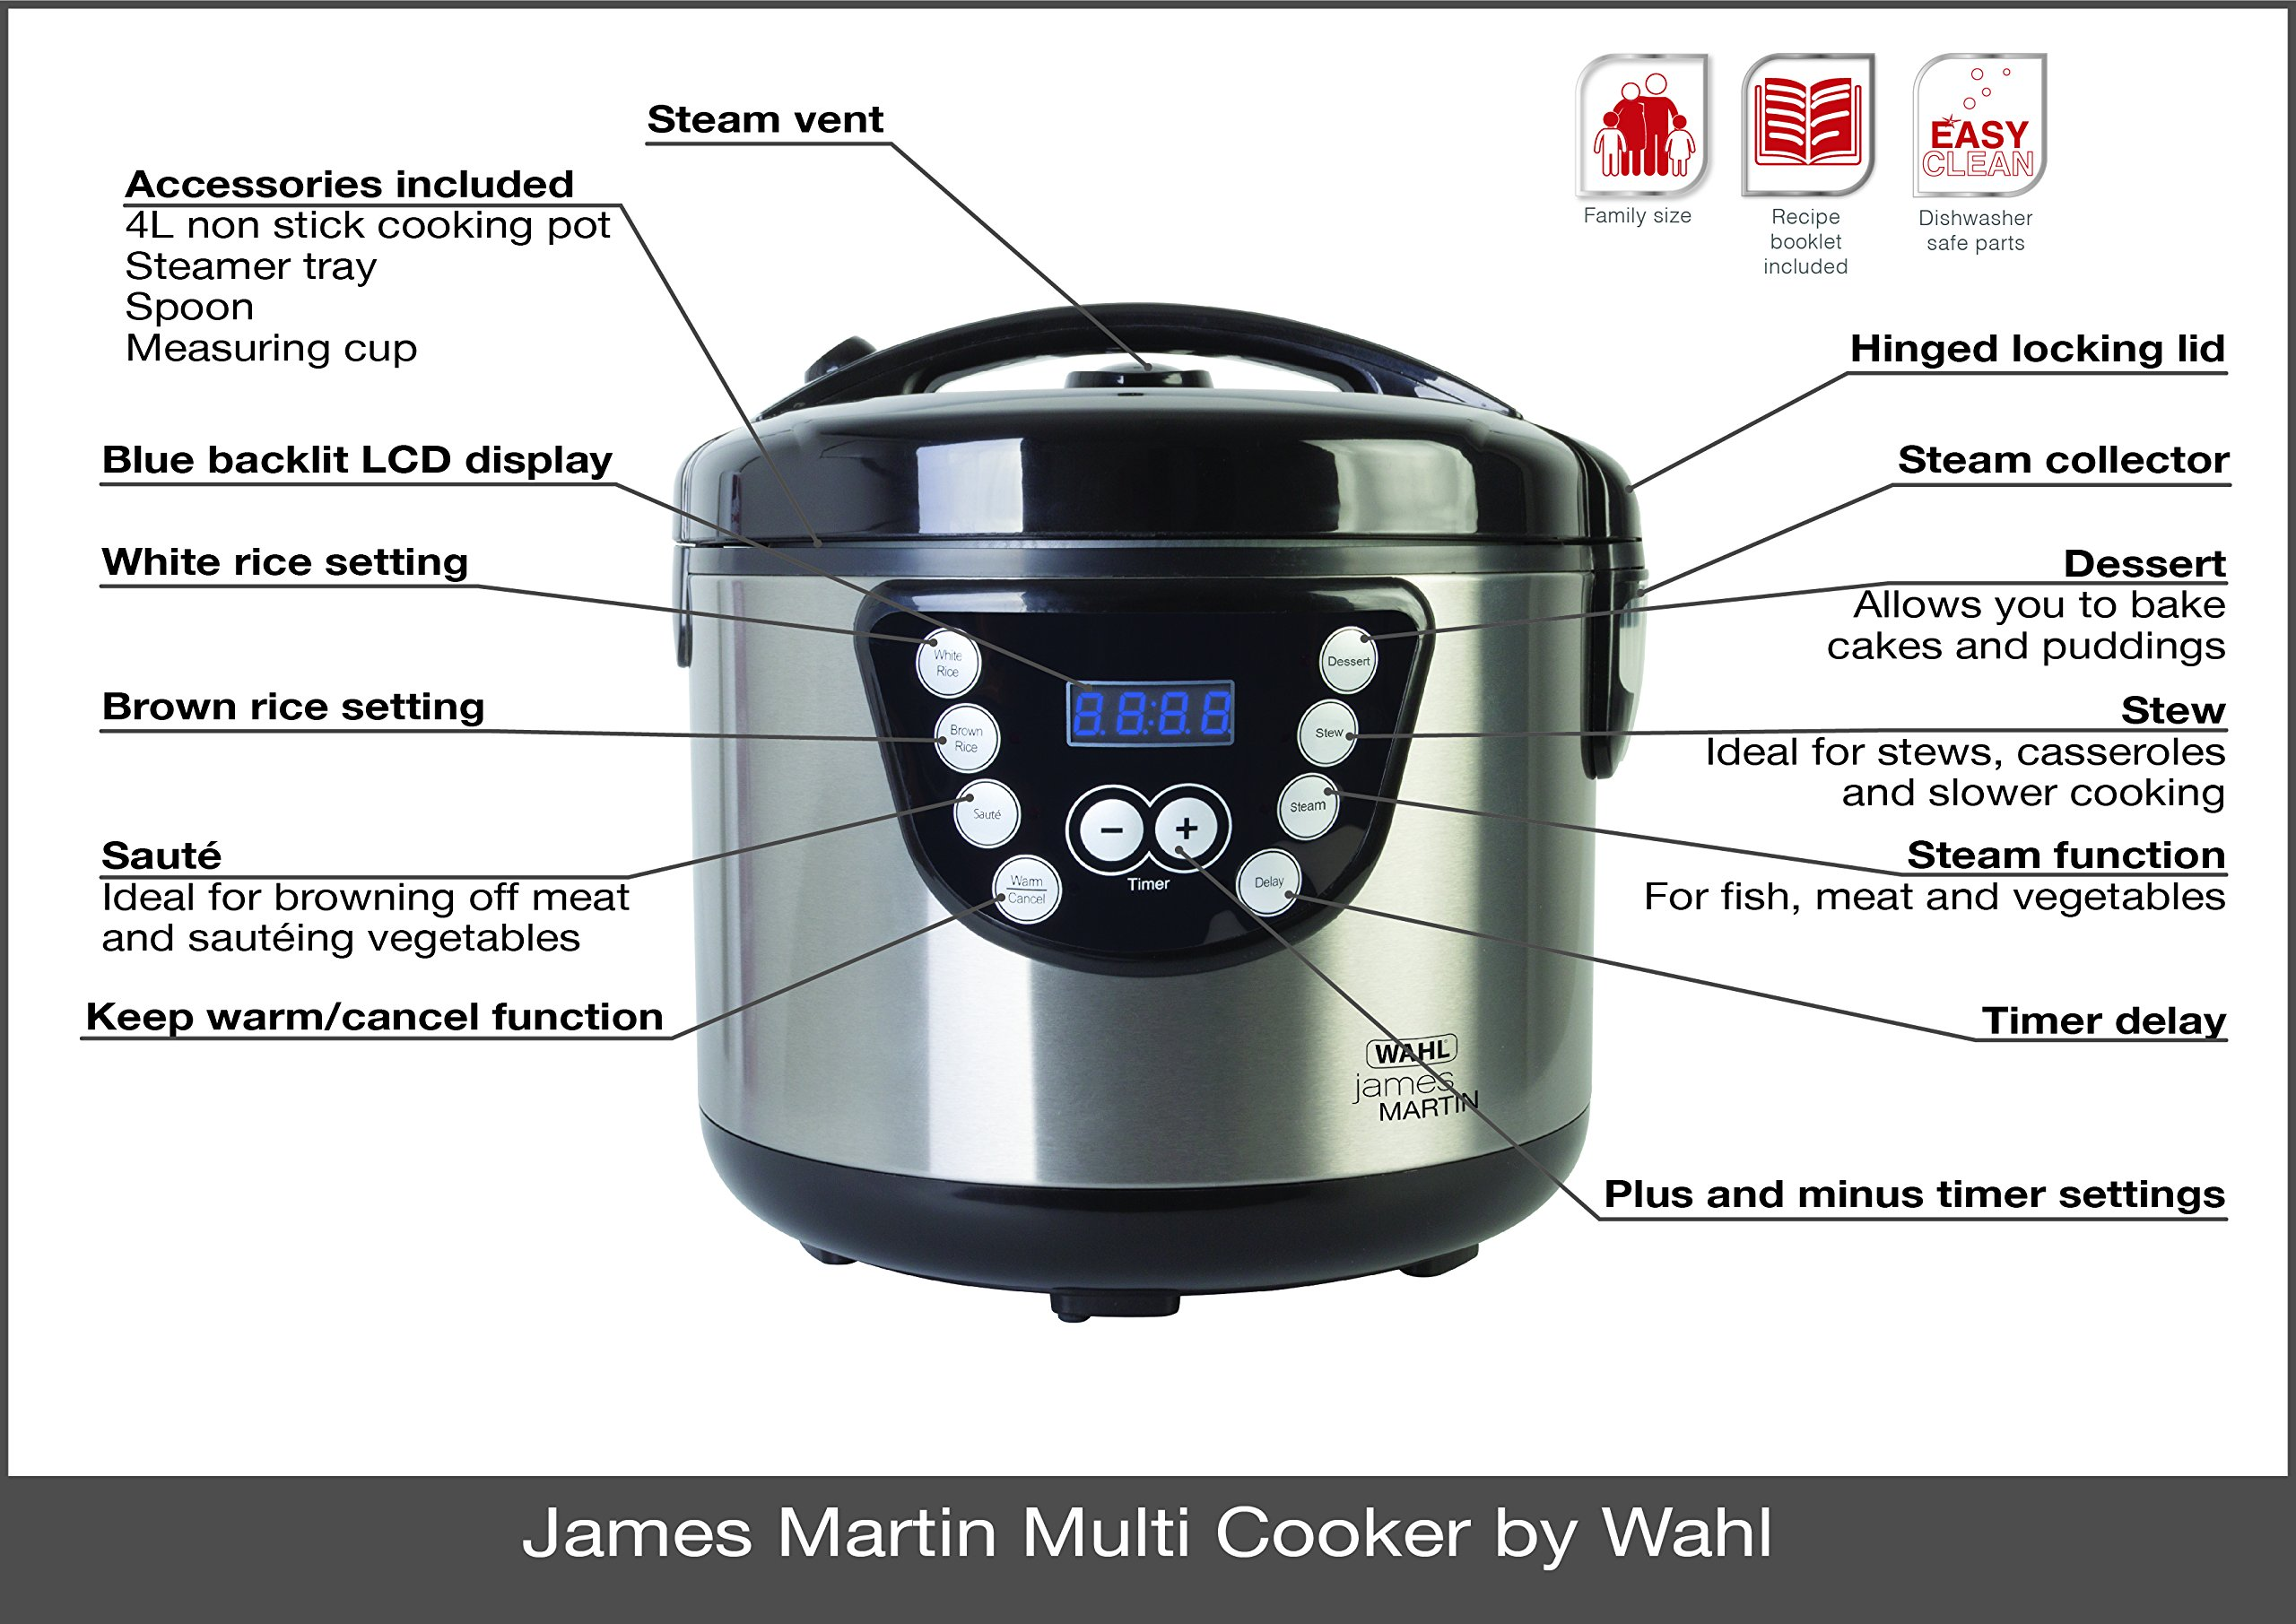 81CbnAQDd5L - Wahl ZX916 James Martin Multi Cooker, Steaming, Sautéing, Stewing, Cooking, 24 hrs delay timer, Family sized 4L Capacity…